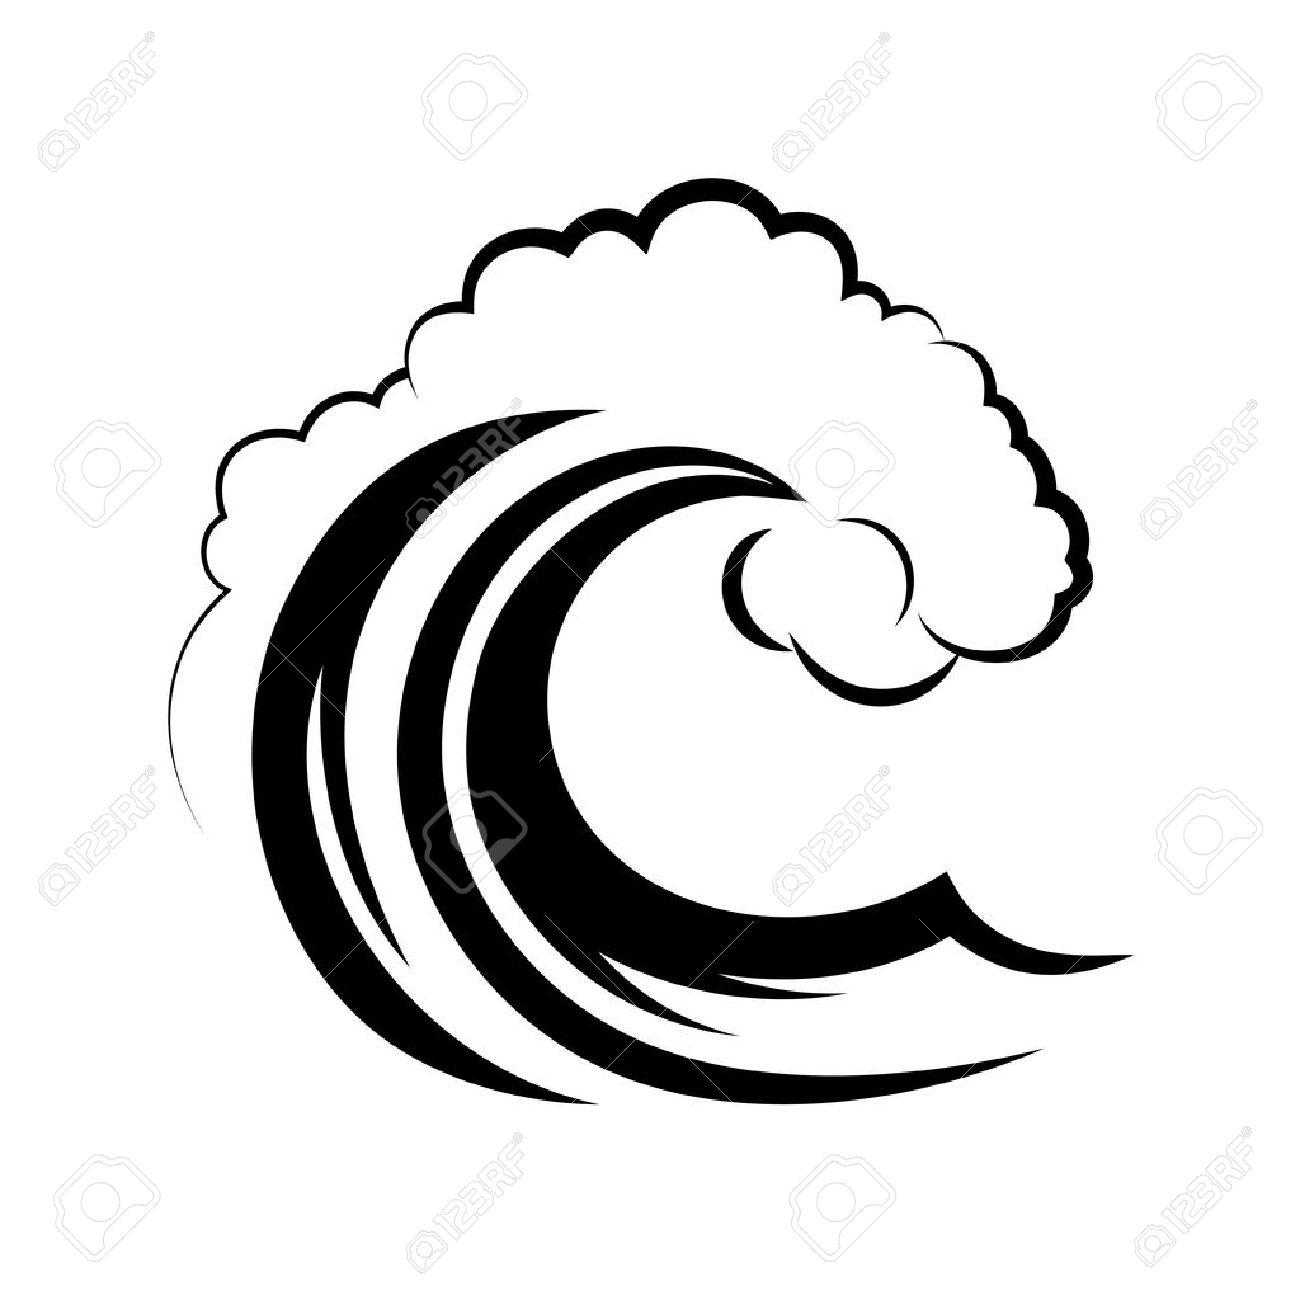 ocean wave on a white background royalty free cliparts vectors and rh 123rf com ocean wave vector illustrator ocean wave vector free download